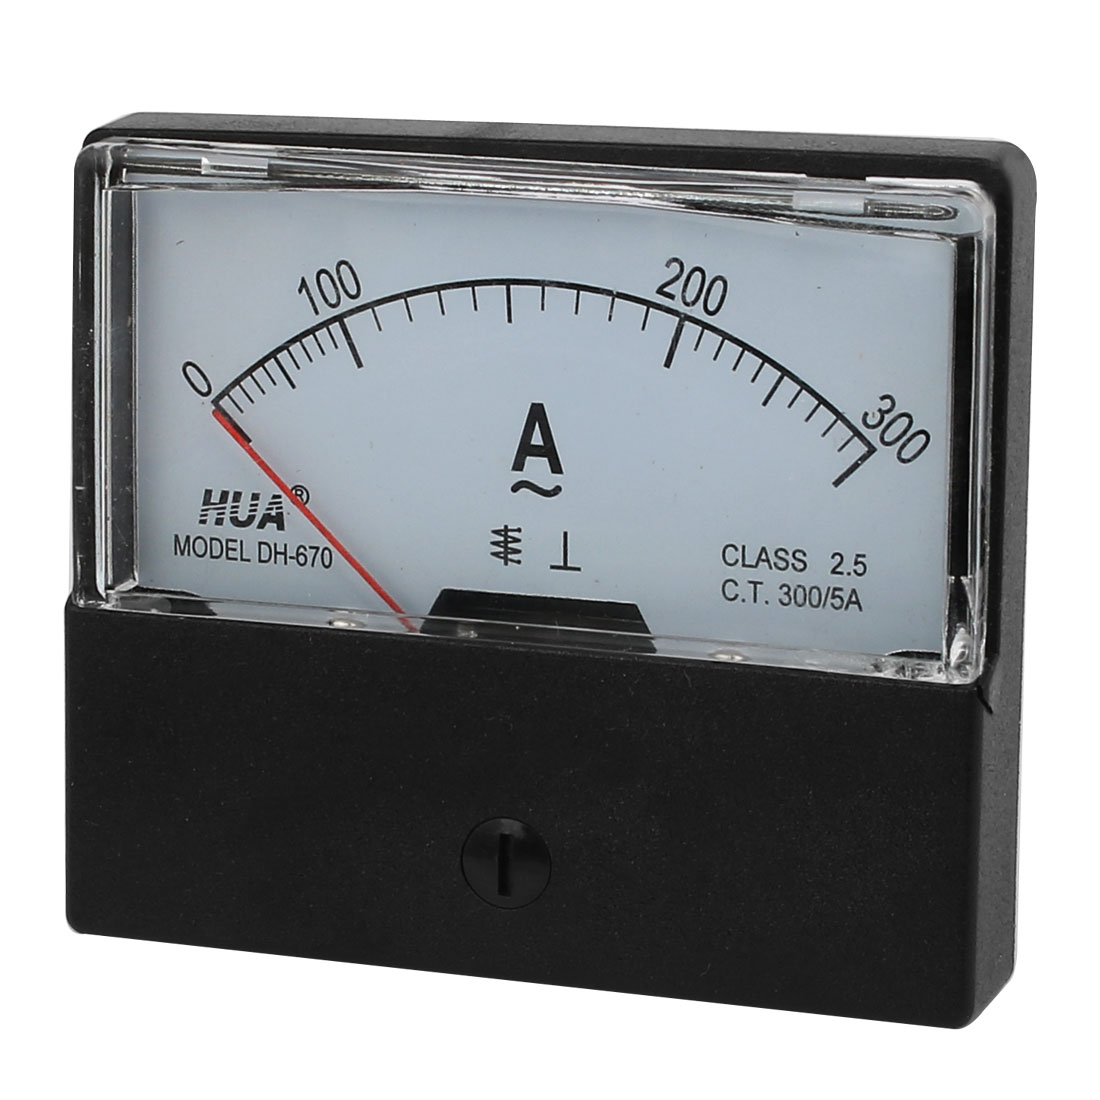 White Clear Square Plastic Shell AC 0-300A 2.5 Class Analogue Ampere Panel Meter